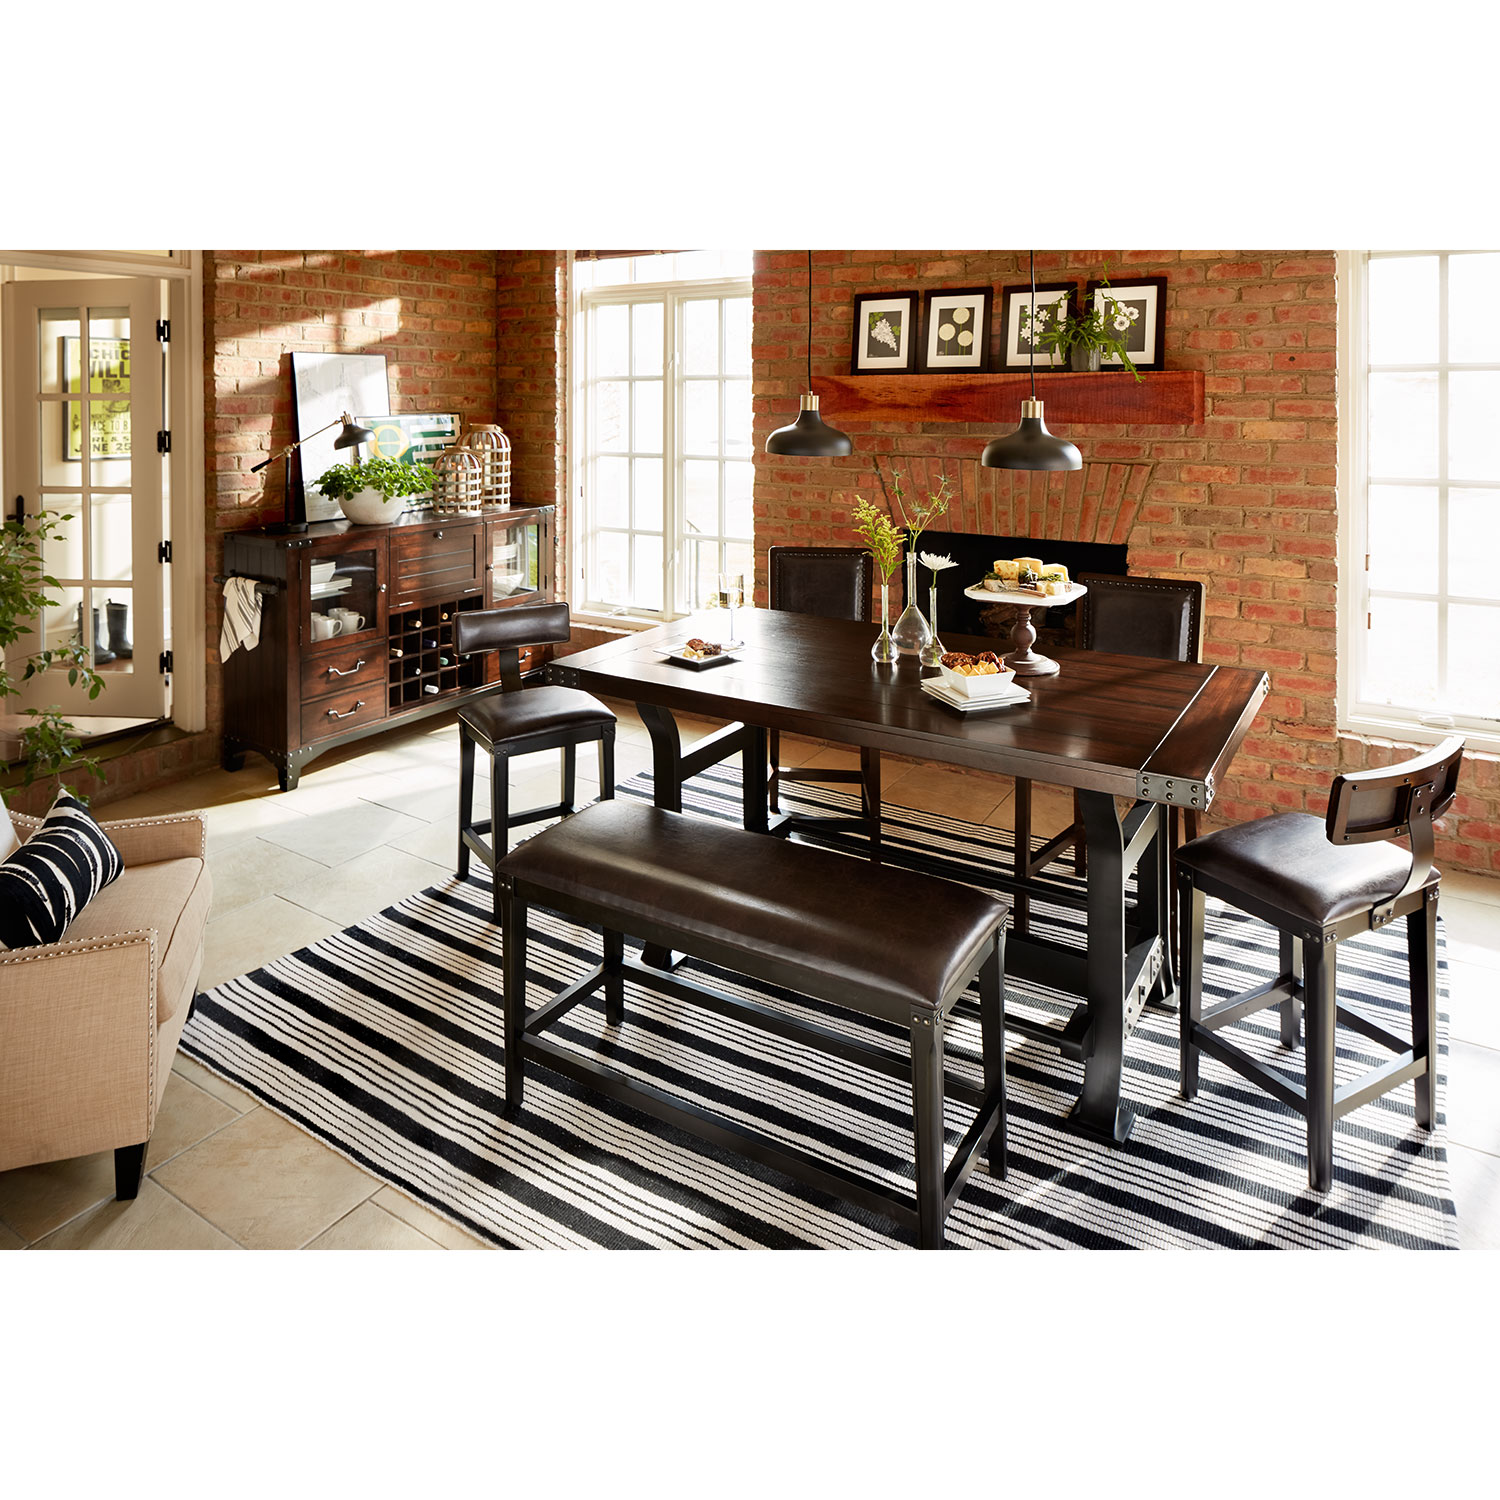 Newcastle Counter-Height Dining Table - Mahogany | Value City ...